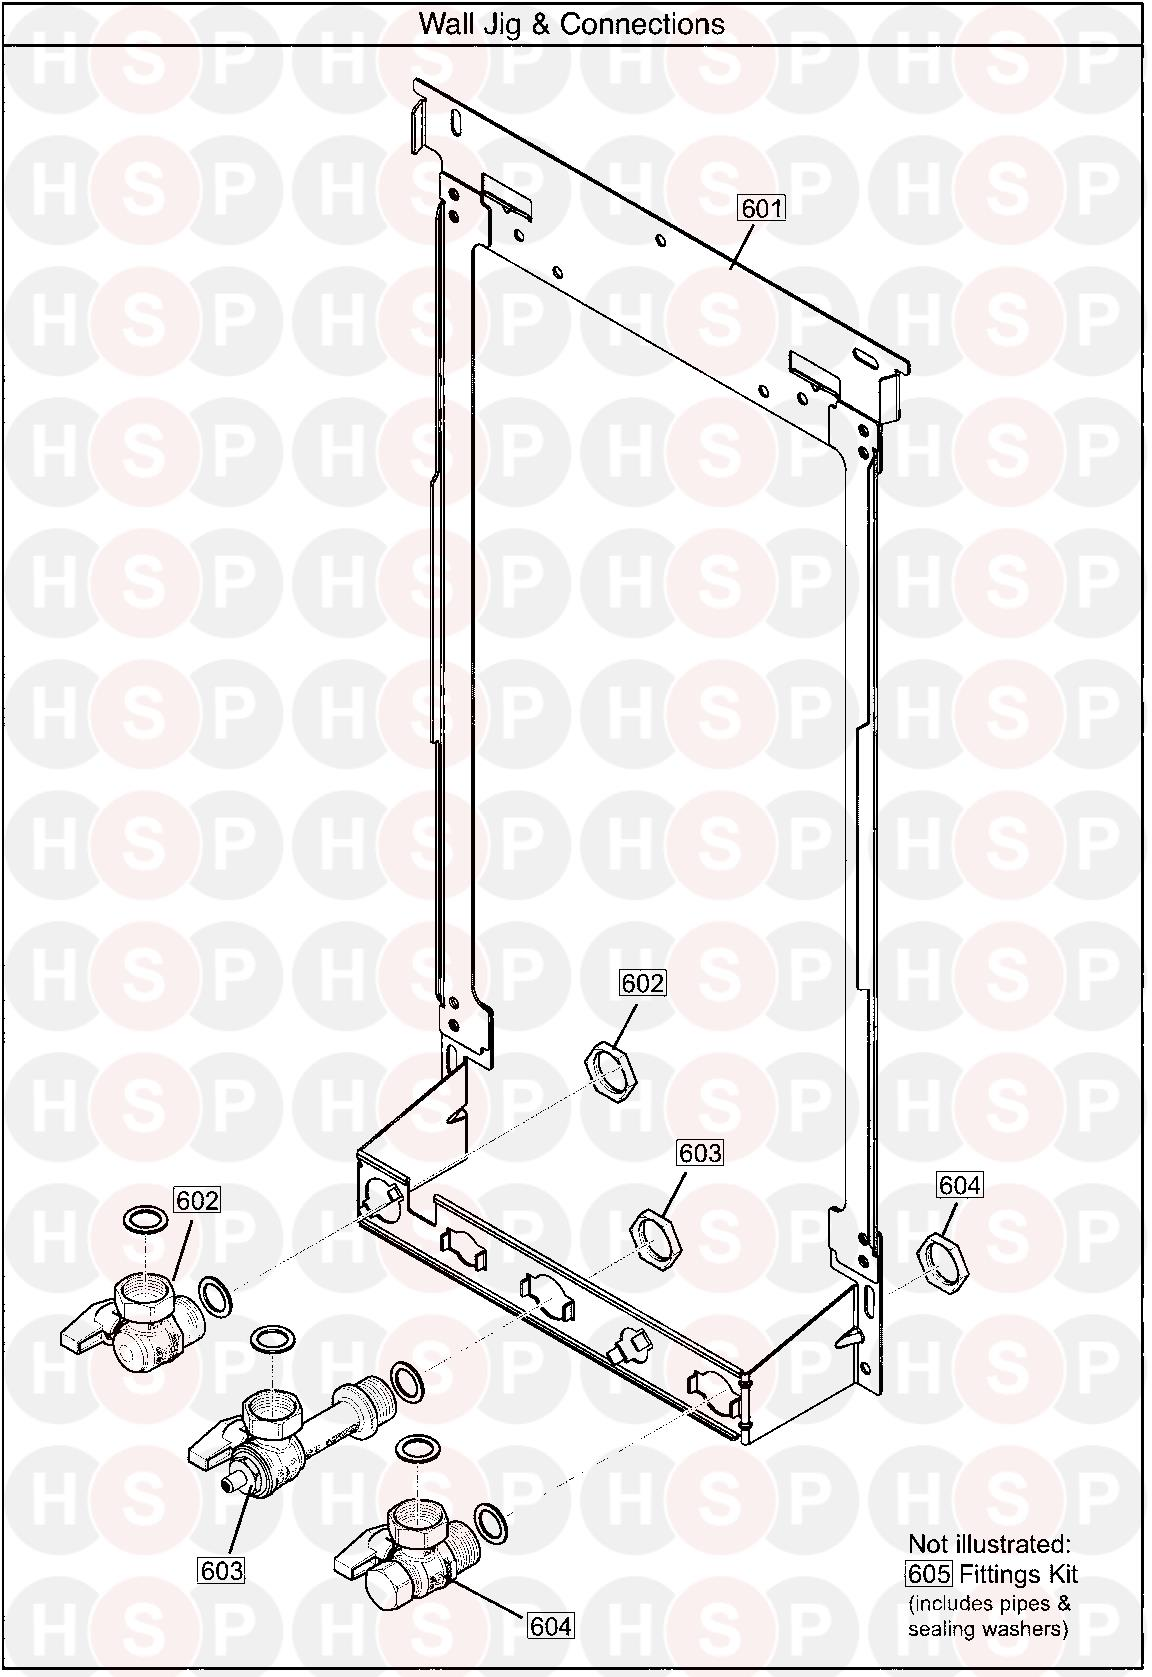 Wall Jig & Hydraulic Connections diagram for Baxi SYSTEM 32